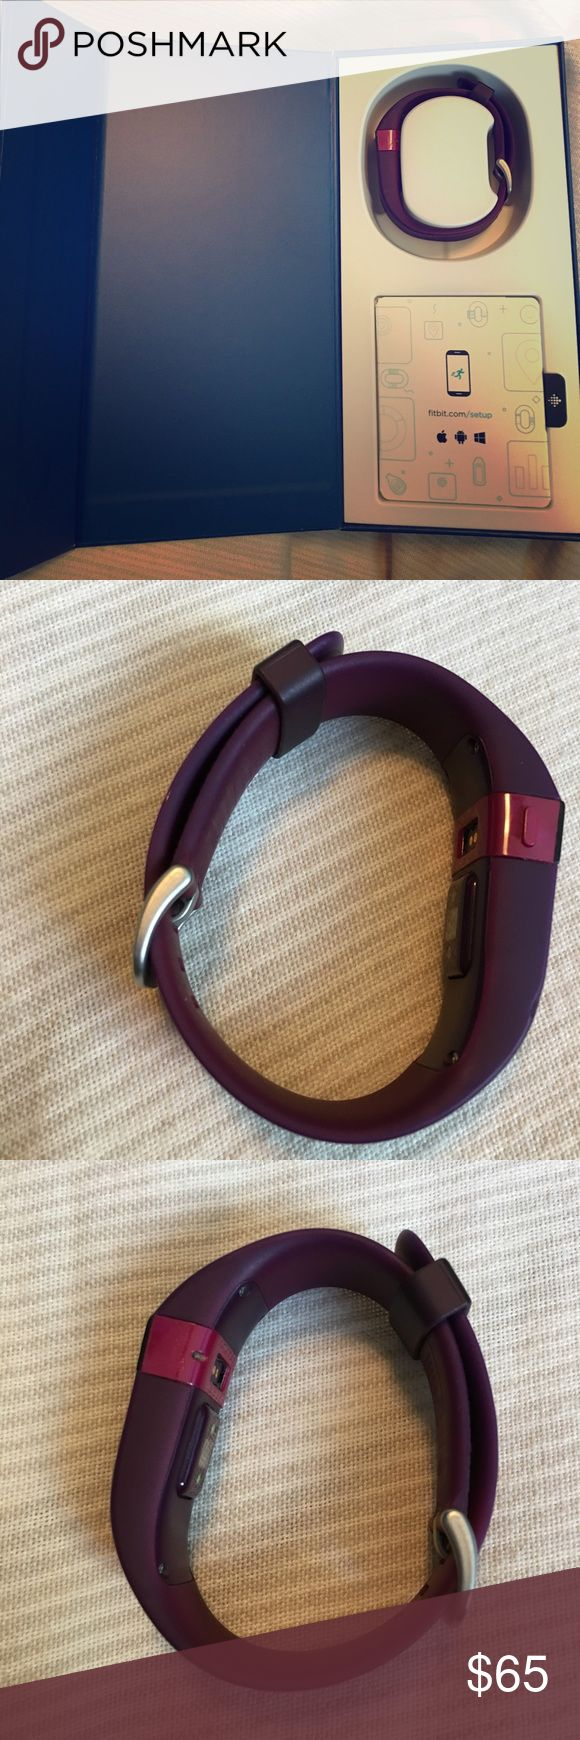 Fitbit Charge HR Large Plum Fitbit Charge HR in great condition with charging cable and USB bluetooth adapter fitbit Other